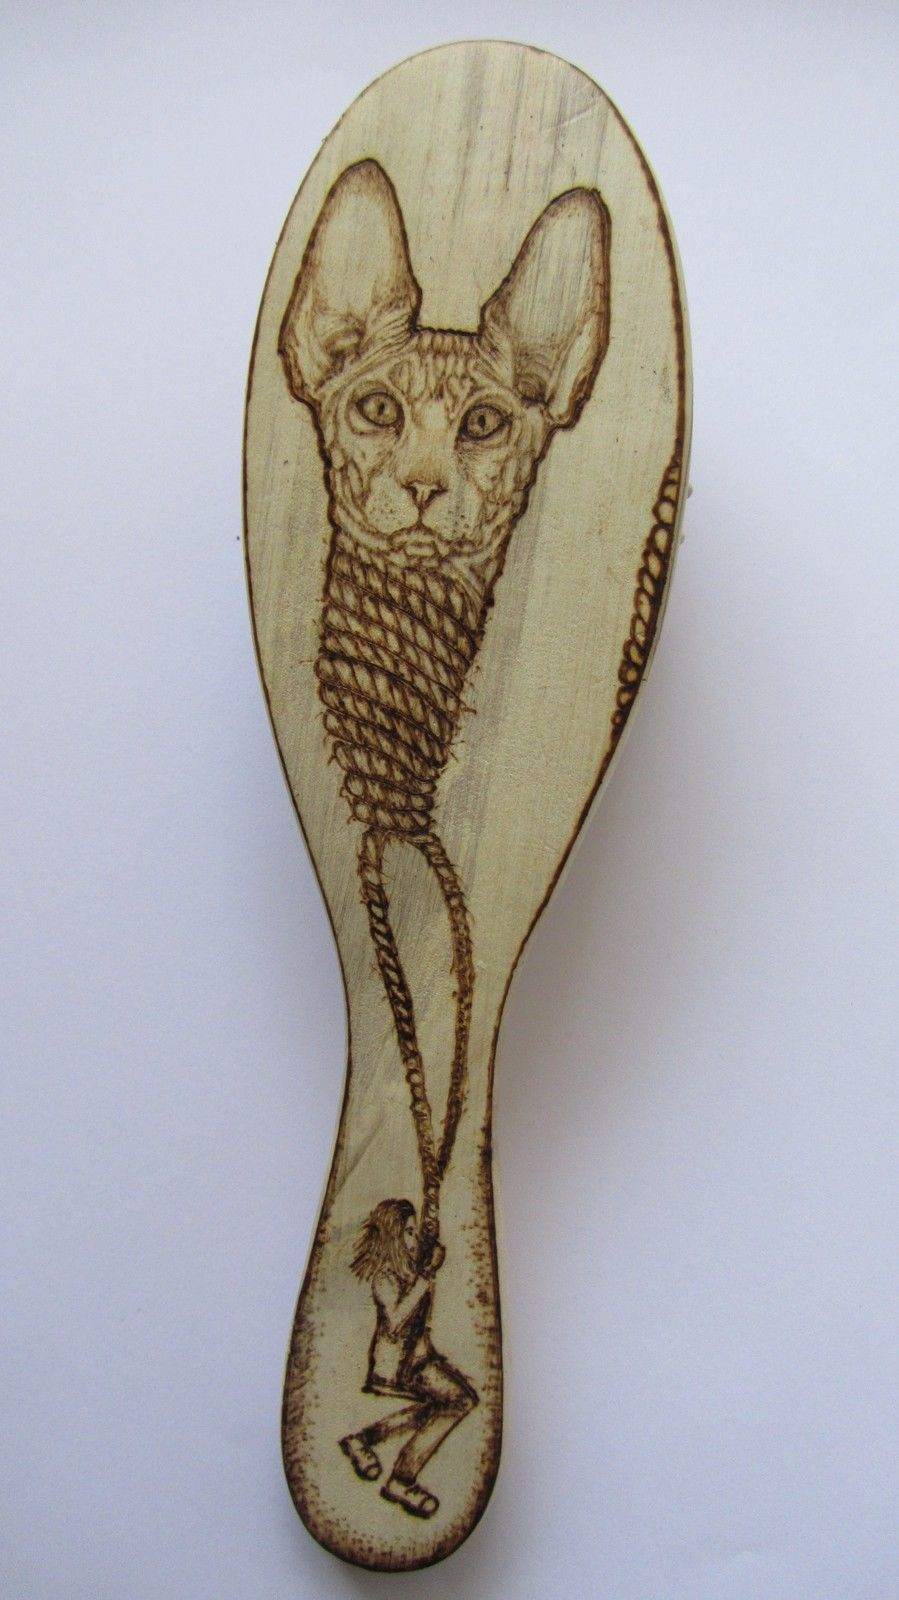 HAND CARVED WOODEN HAIR BRUSH PYROGRAPHY CAT SPHYNX CRADLE